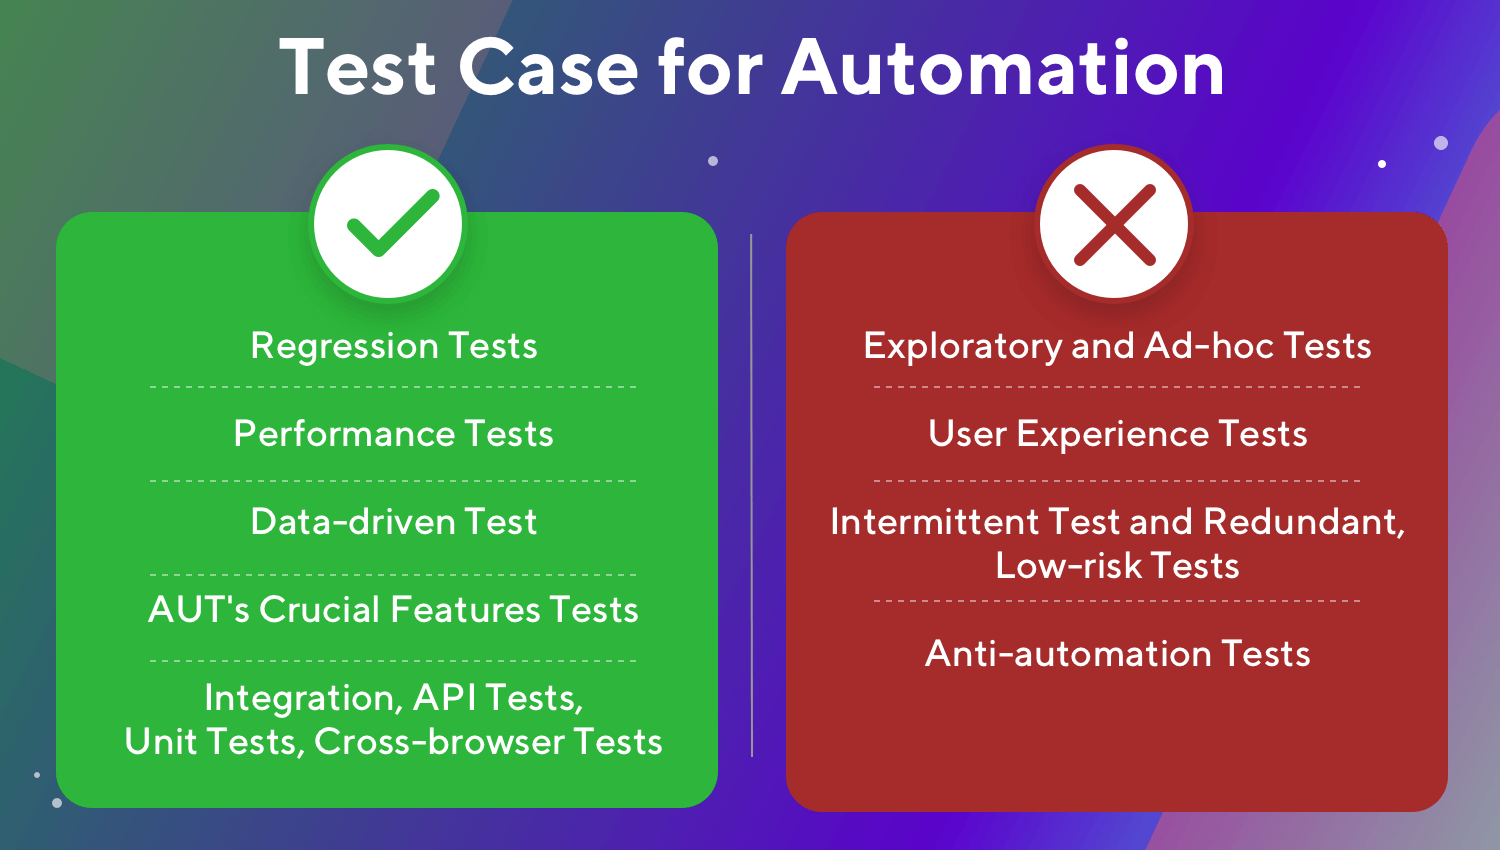 Test Case to Automate